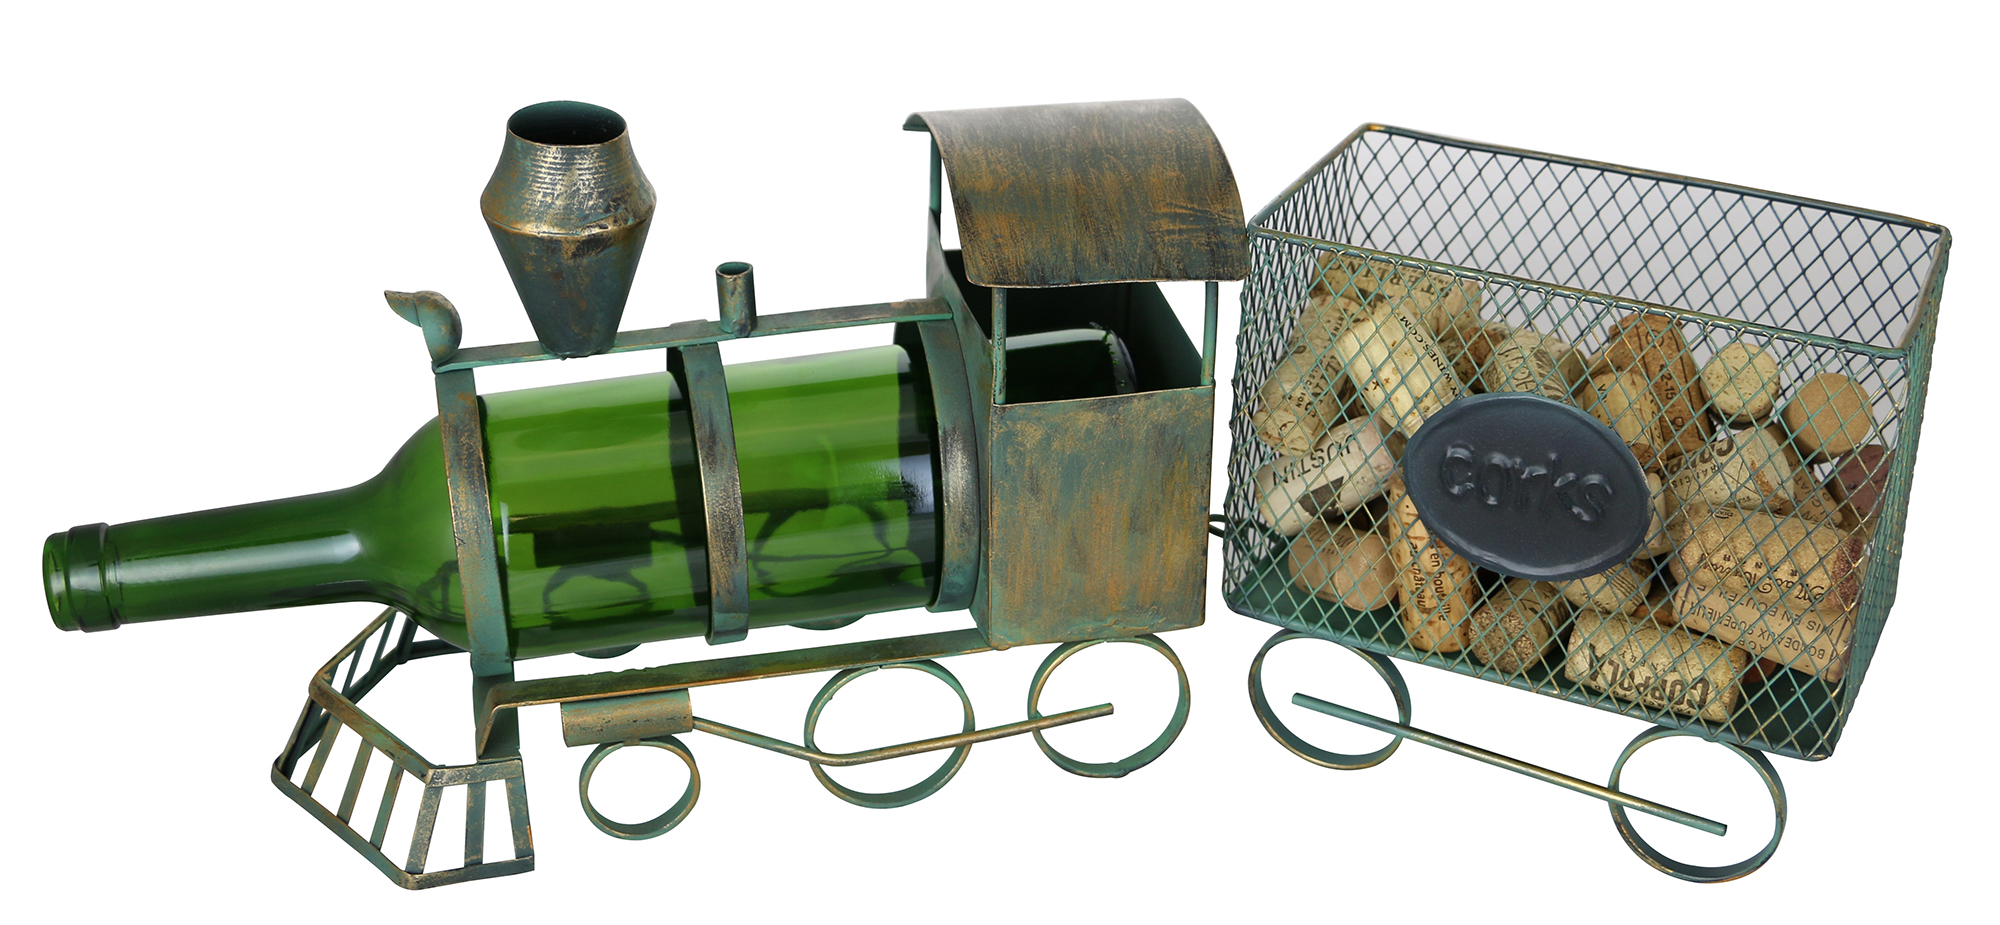 8X18X5 TRAIN BOTTLE & CORK HOLDER